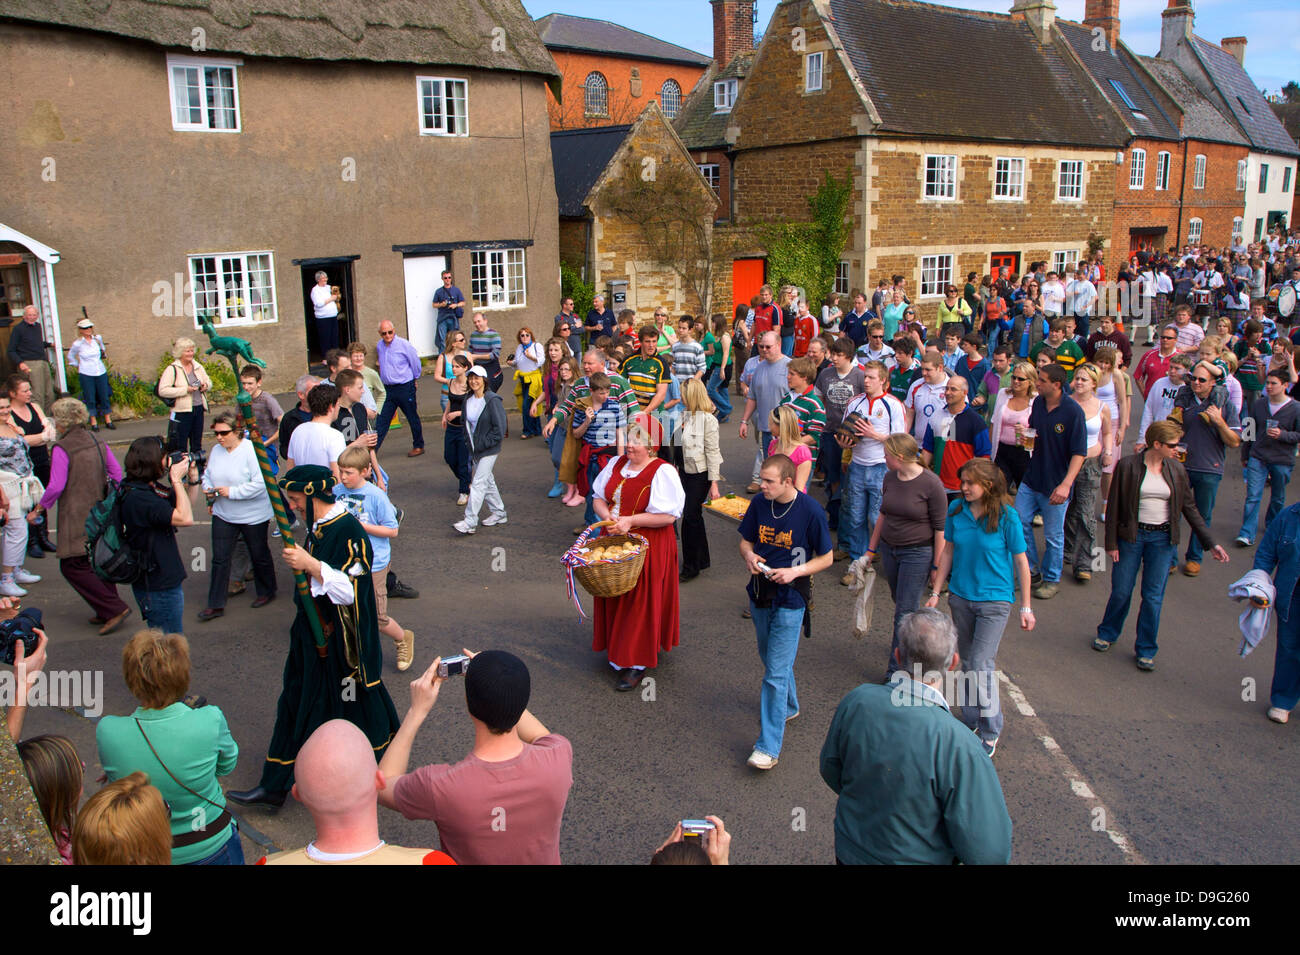 Leaders and participants of the Procession for the Old Annual Custom of Bottle-kicking, Hallaton, Leicestershire, - Stock Image